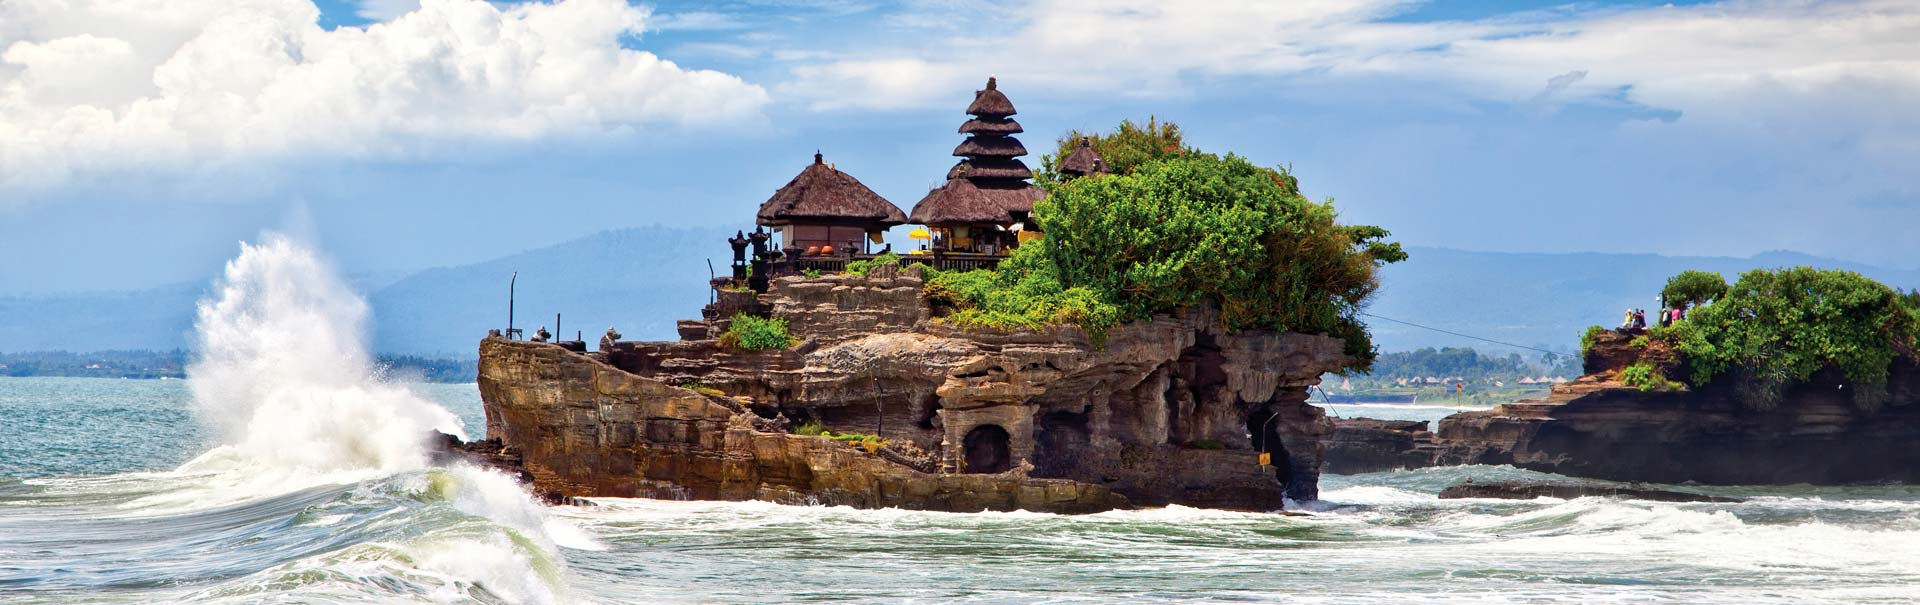 7 Days 6 Nights Women S Special Singapore Bali Women S Special Tour